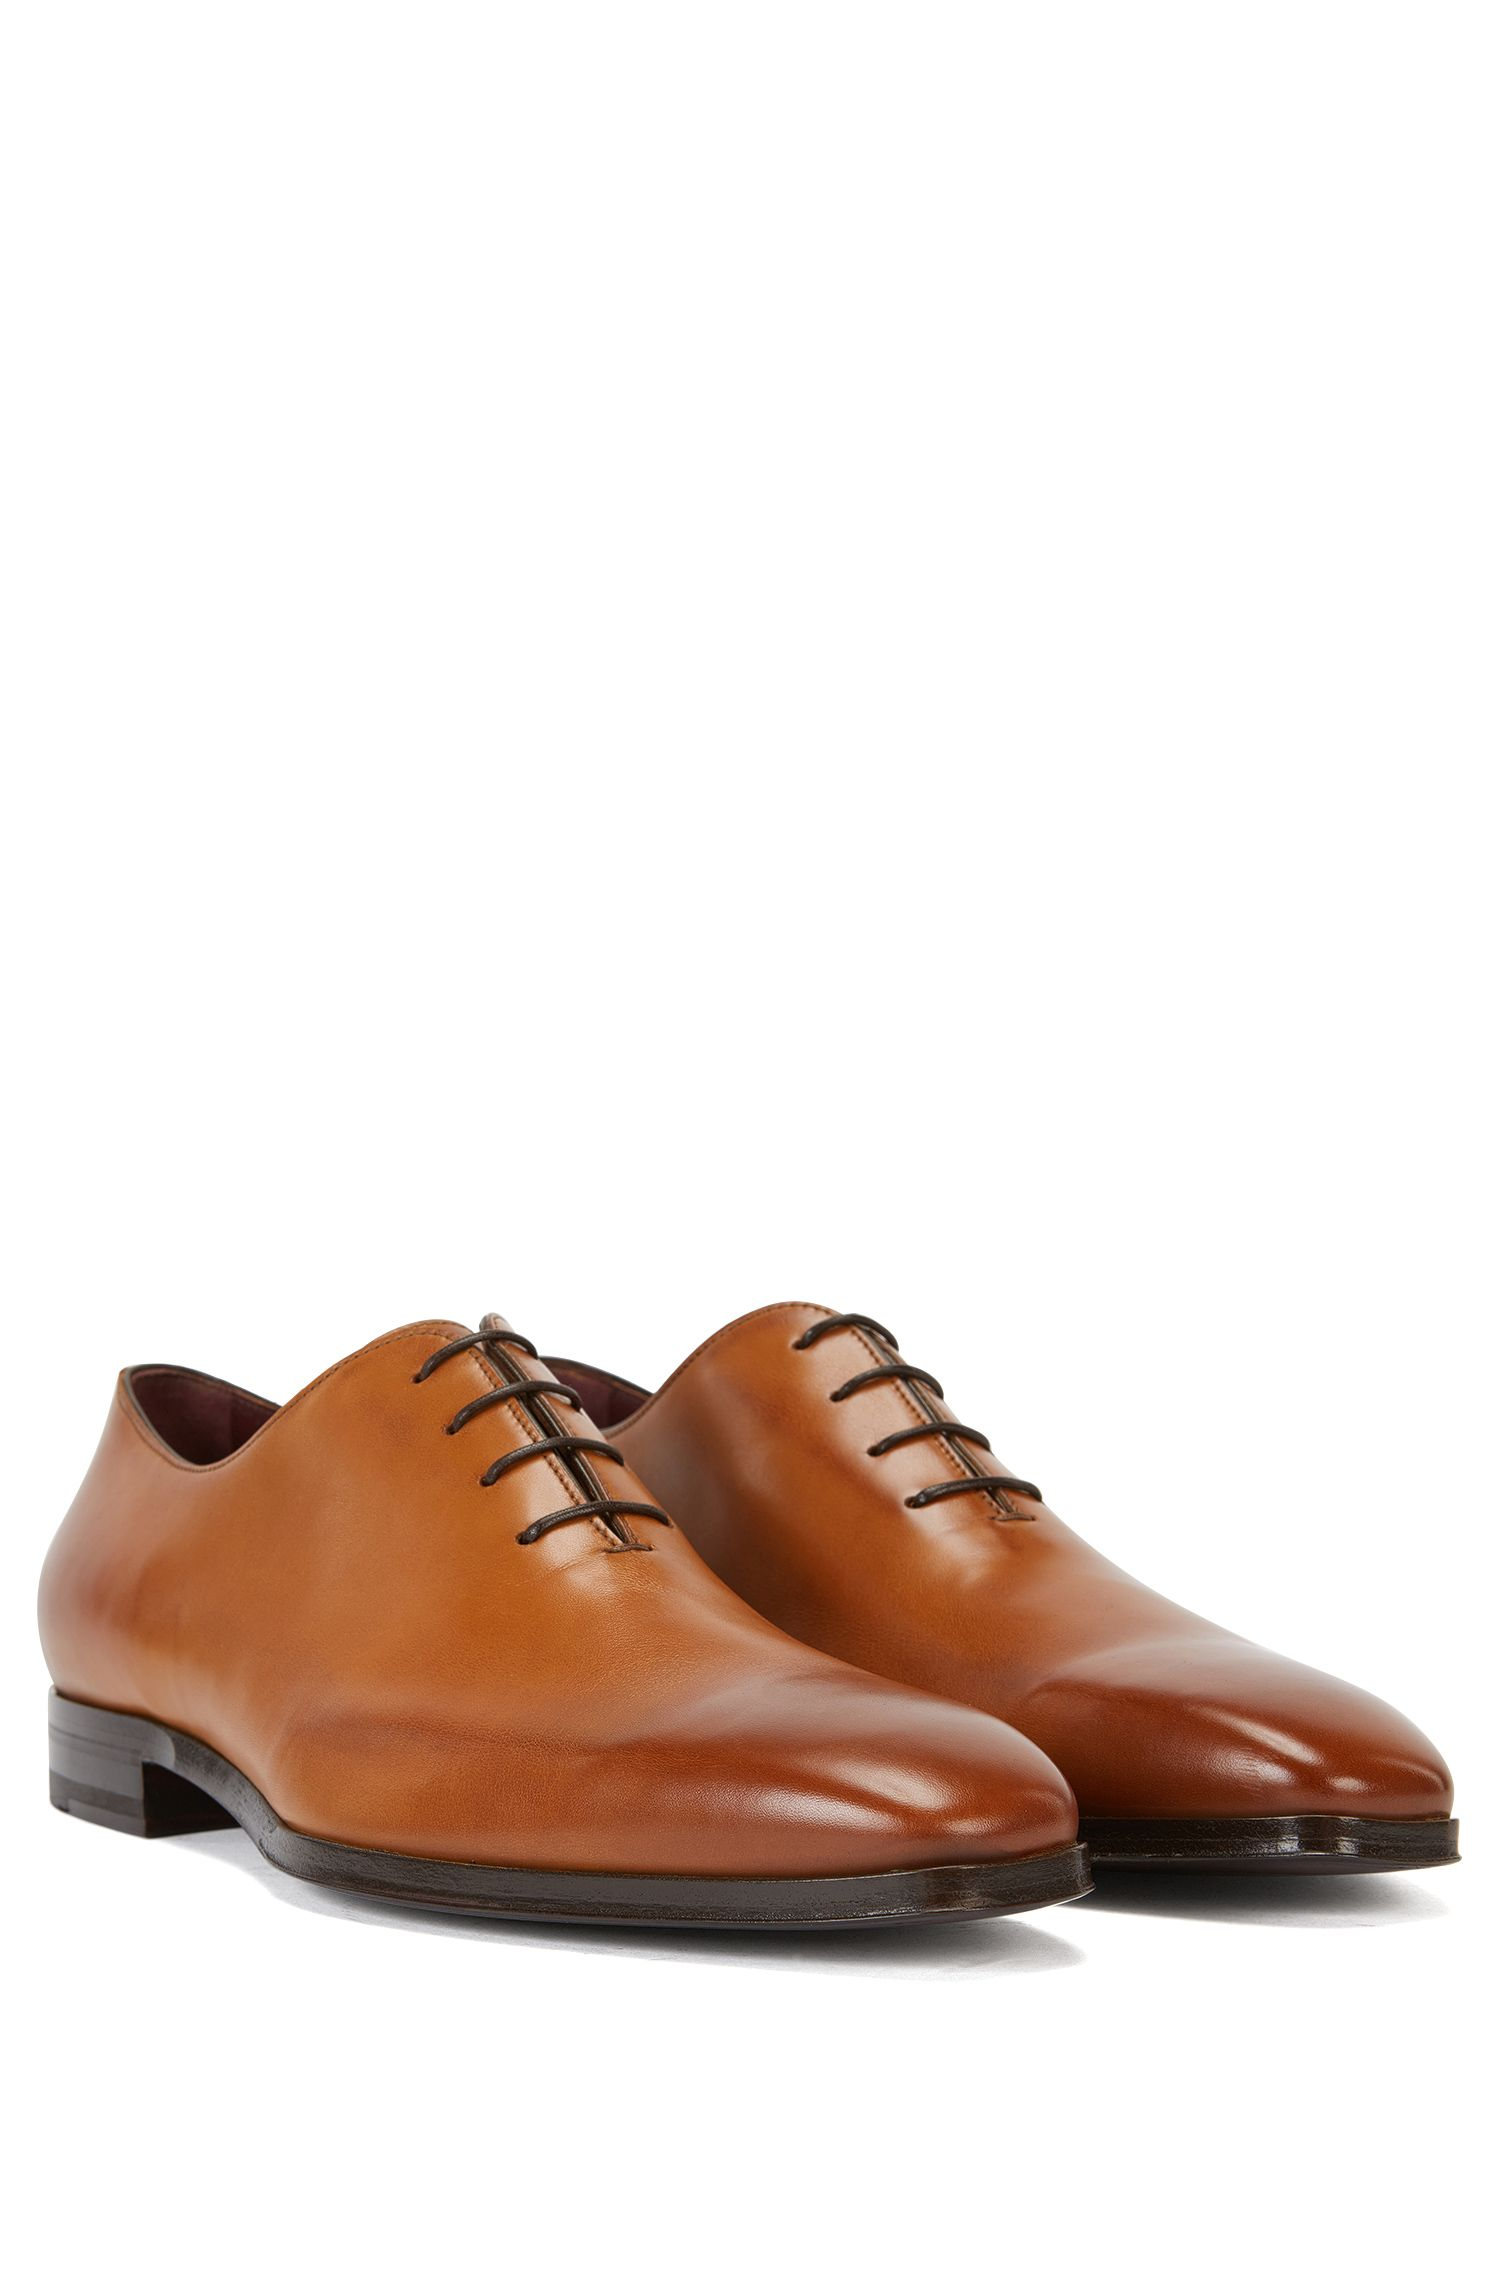 Chaussures Oxford BOSS Tailored en cuir poli, Marron